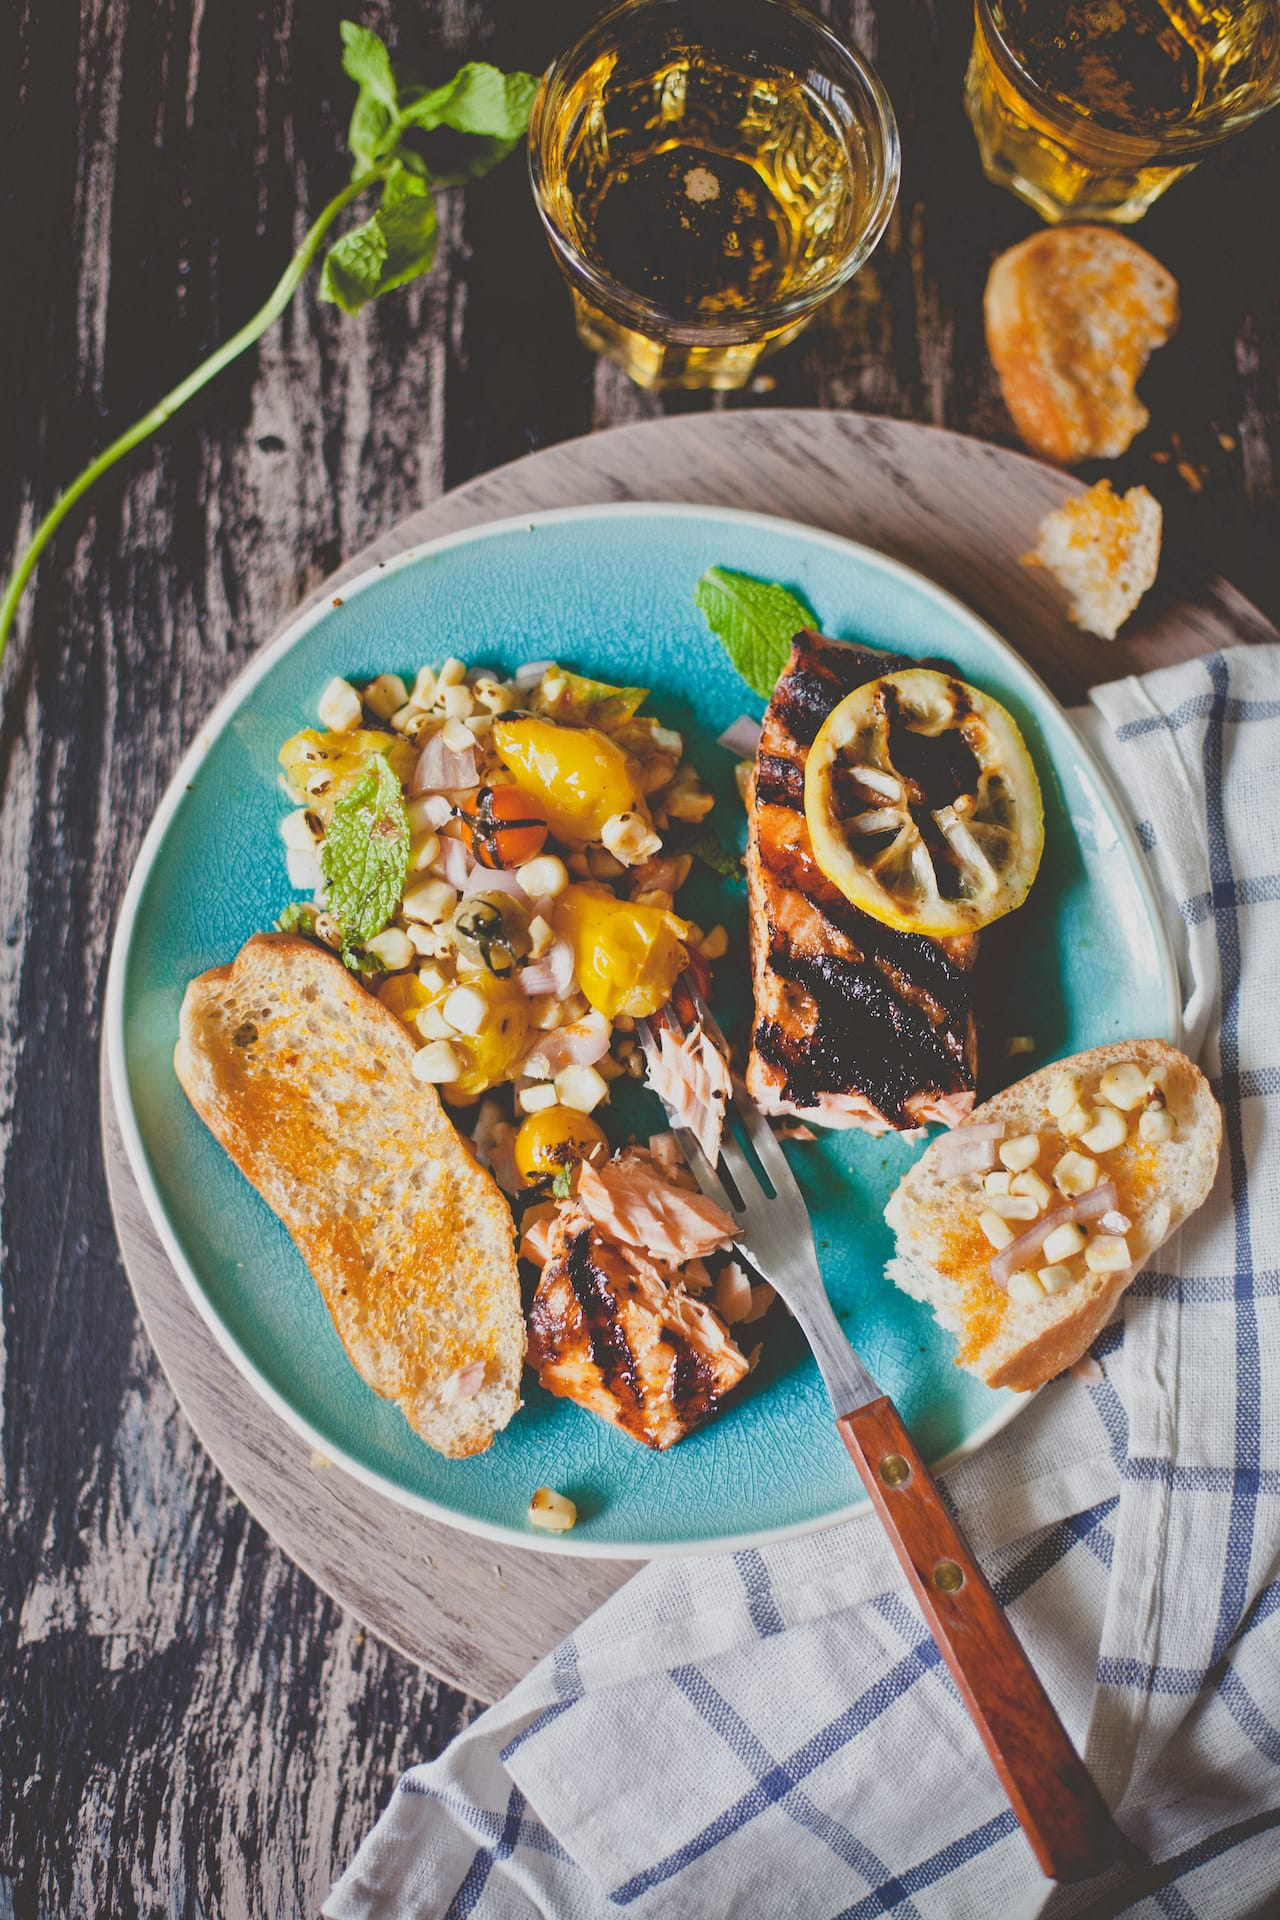 Grilled Salmon with Grilled Corn, Heirloom Tomatoes Salad | Playful Cooking